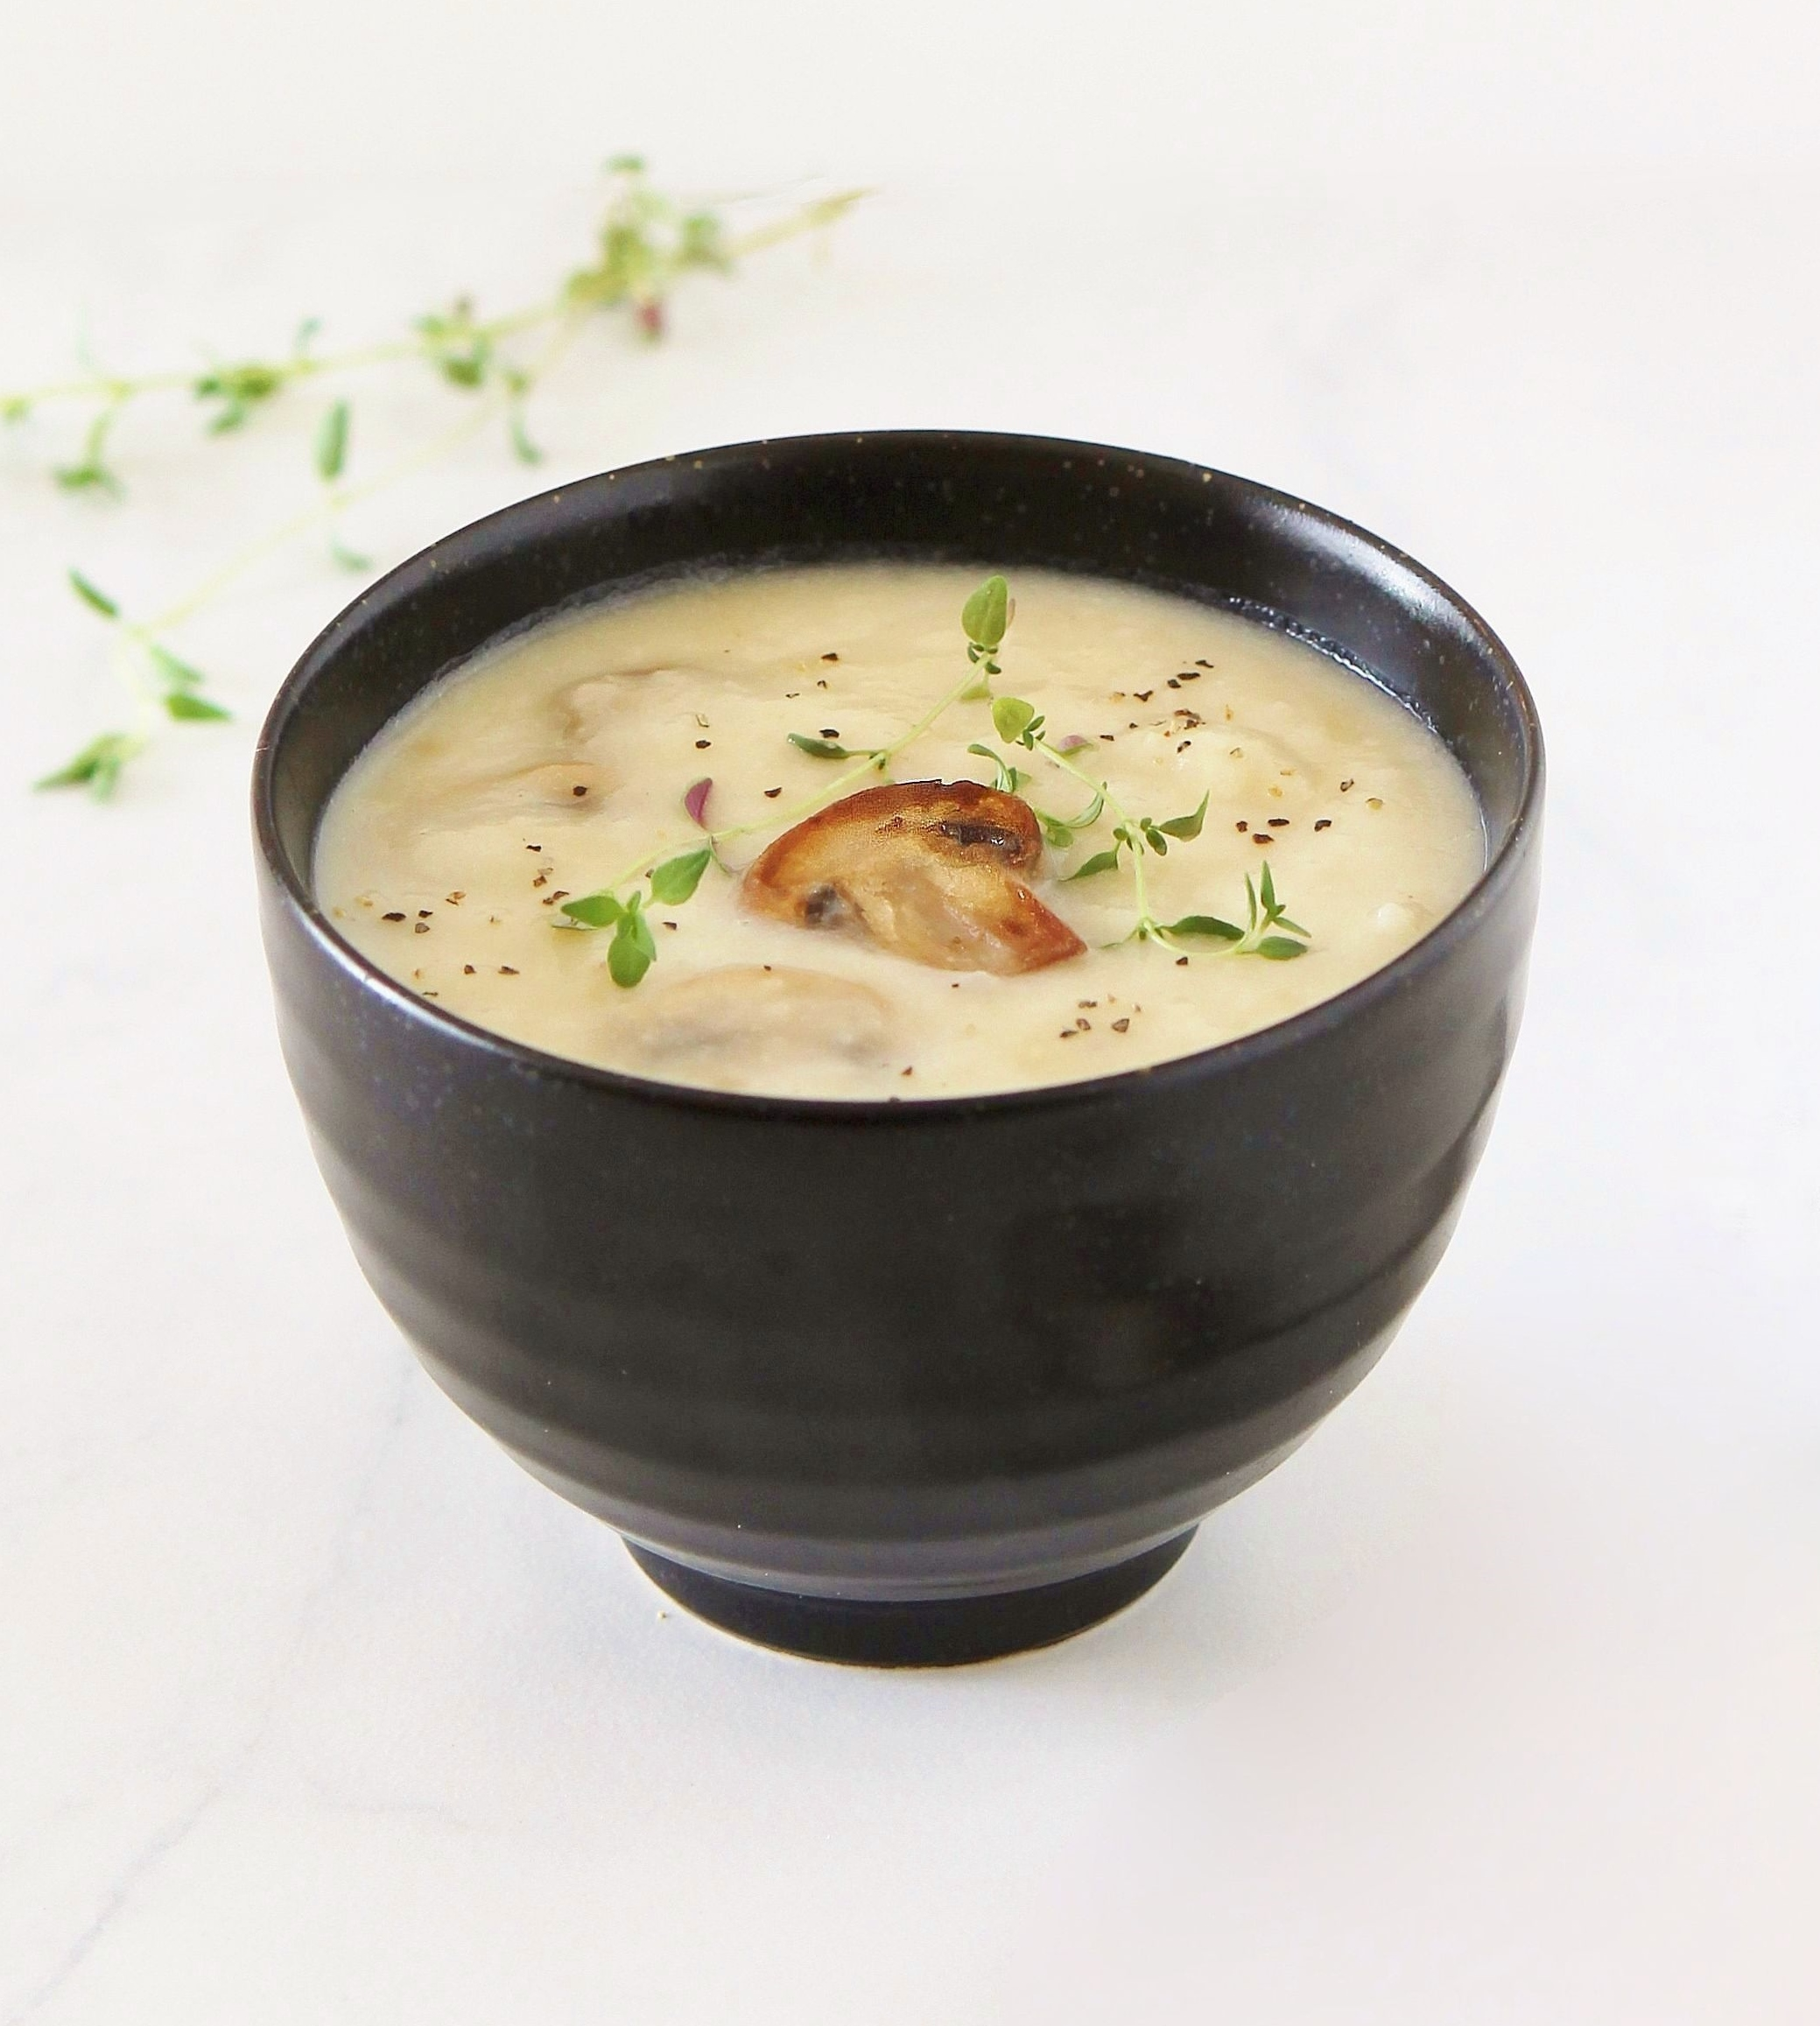 roasted garlic and creamy potato soup with mushroom